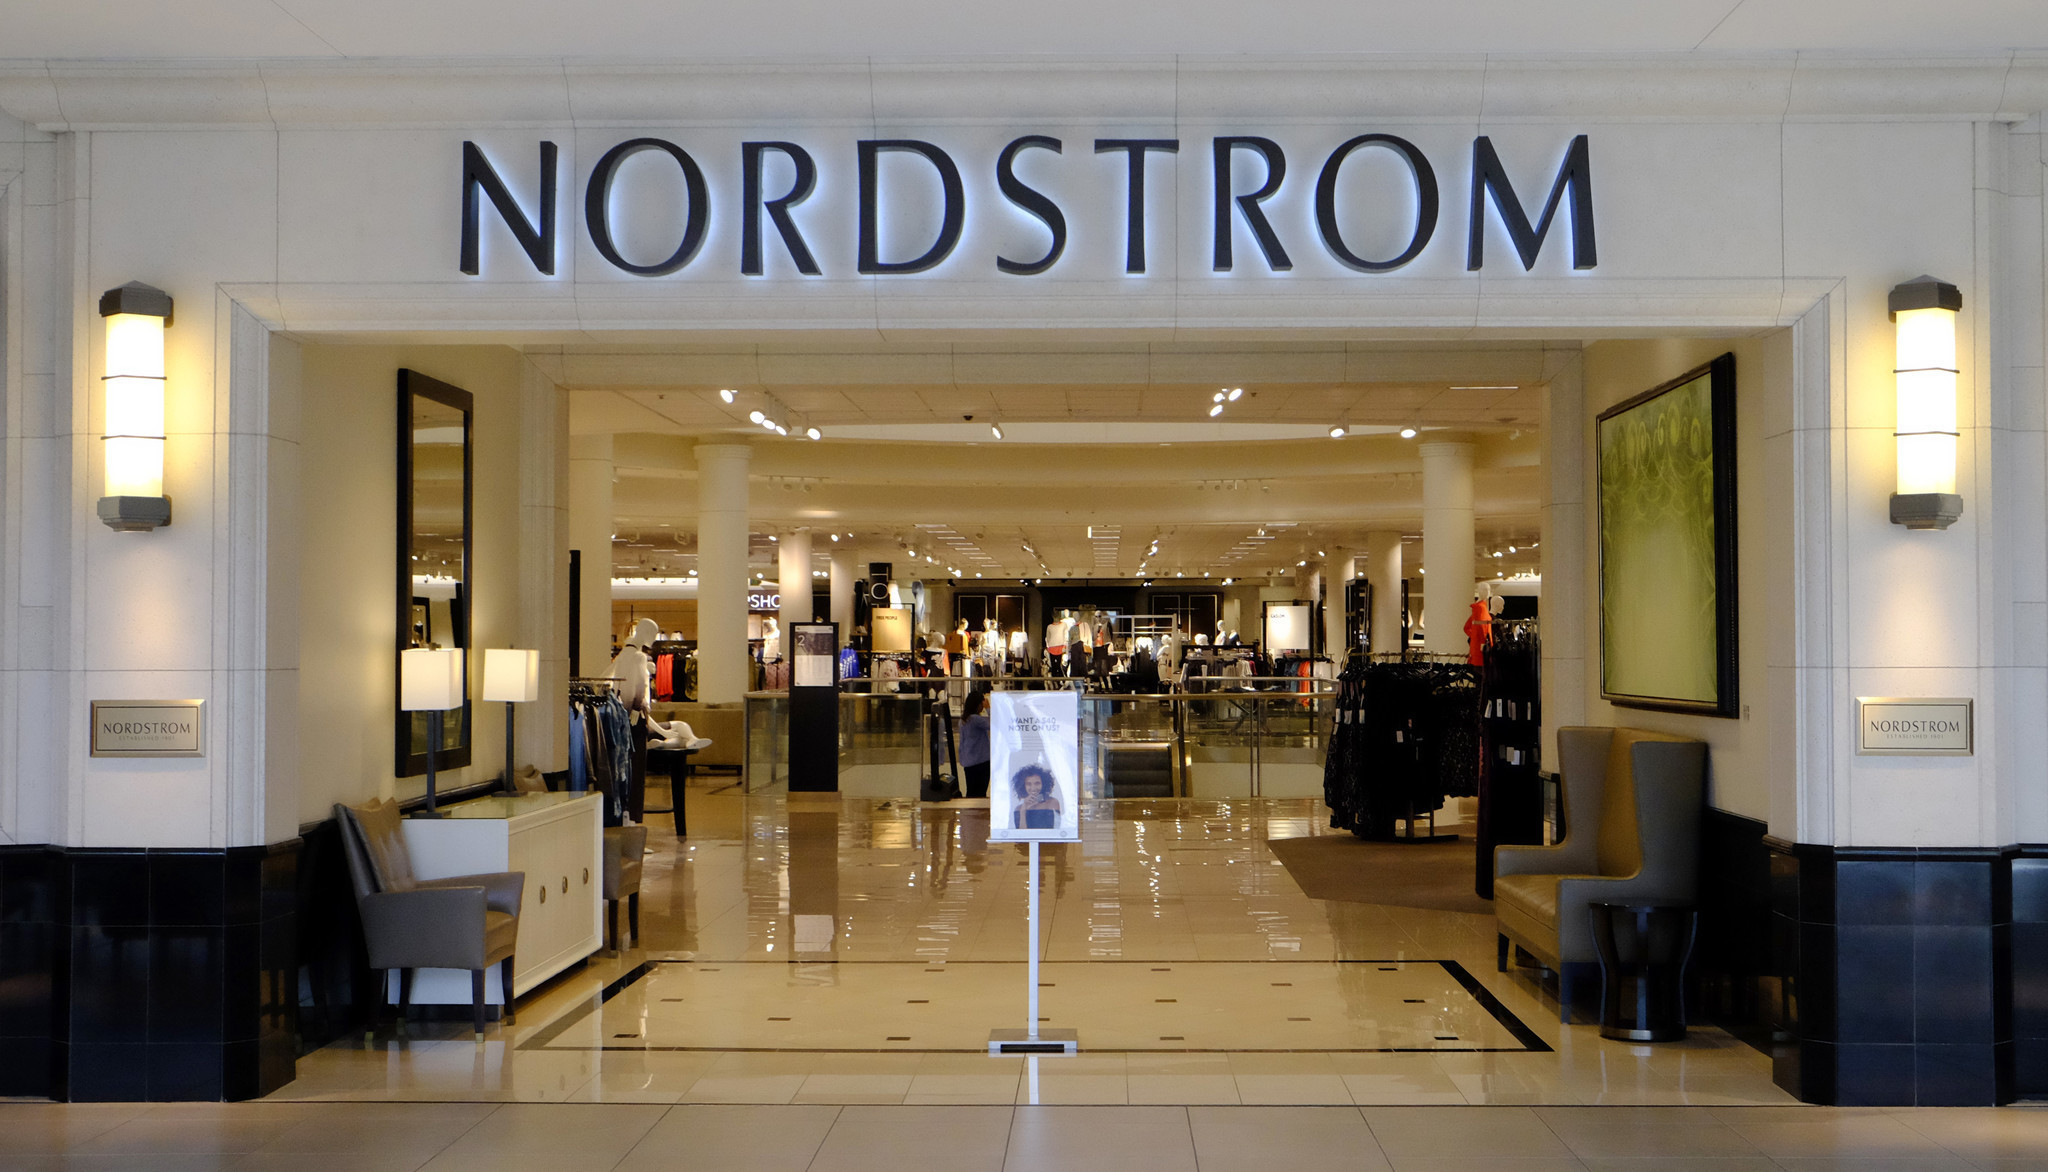 We continue to grow our strategic brand partnerships with a focus on establishing Nordstrom as the partner of choice for brands and providing customers with newness.